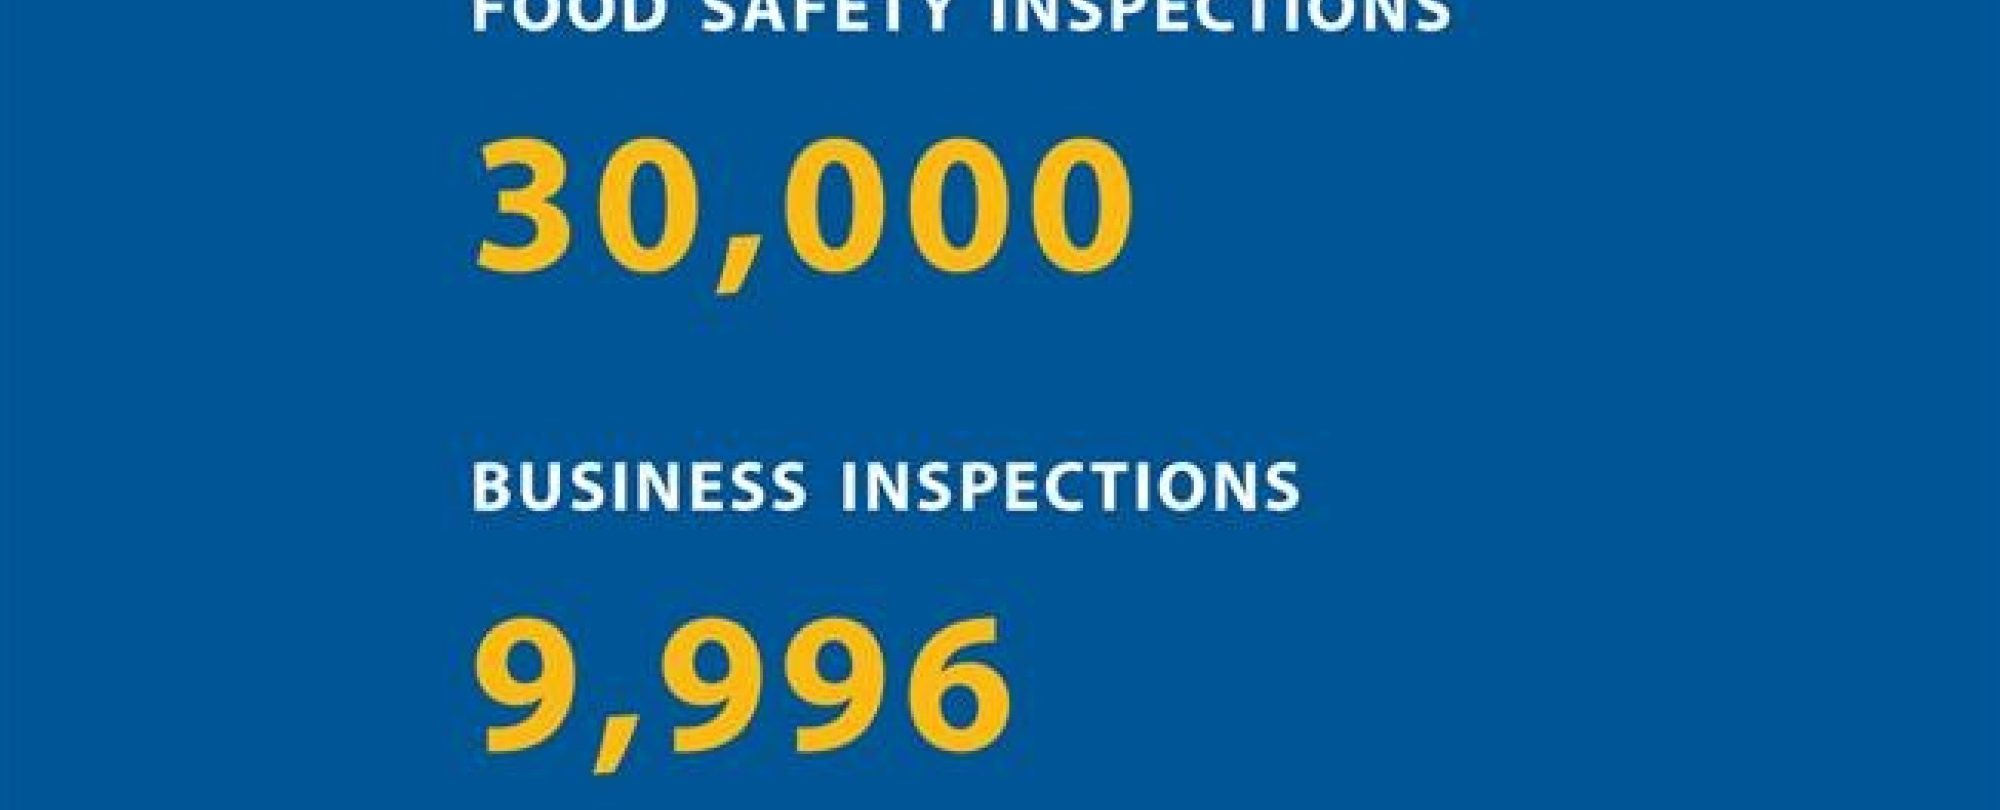 Food safety inspections: 30,000. Business inspections: 9,996